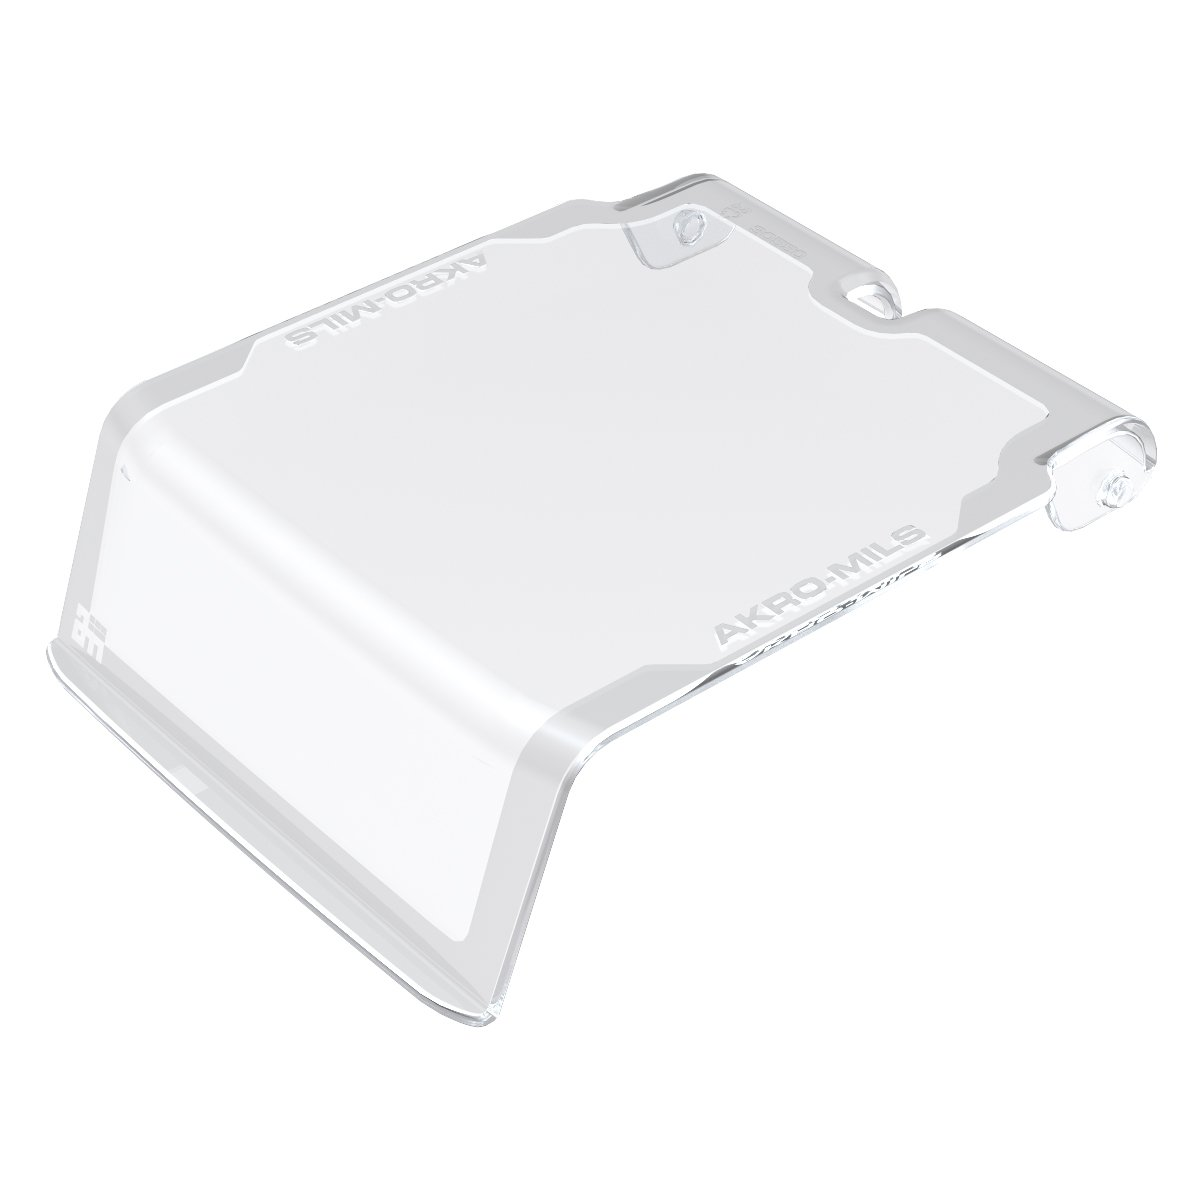 Akro-Mils 30211CRY Lid for 30210 AkroBin, Crystal Clear, 24-Pack